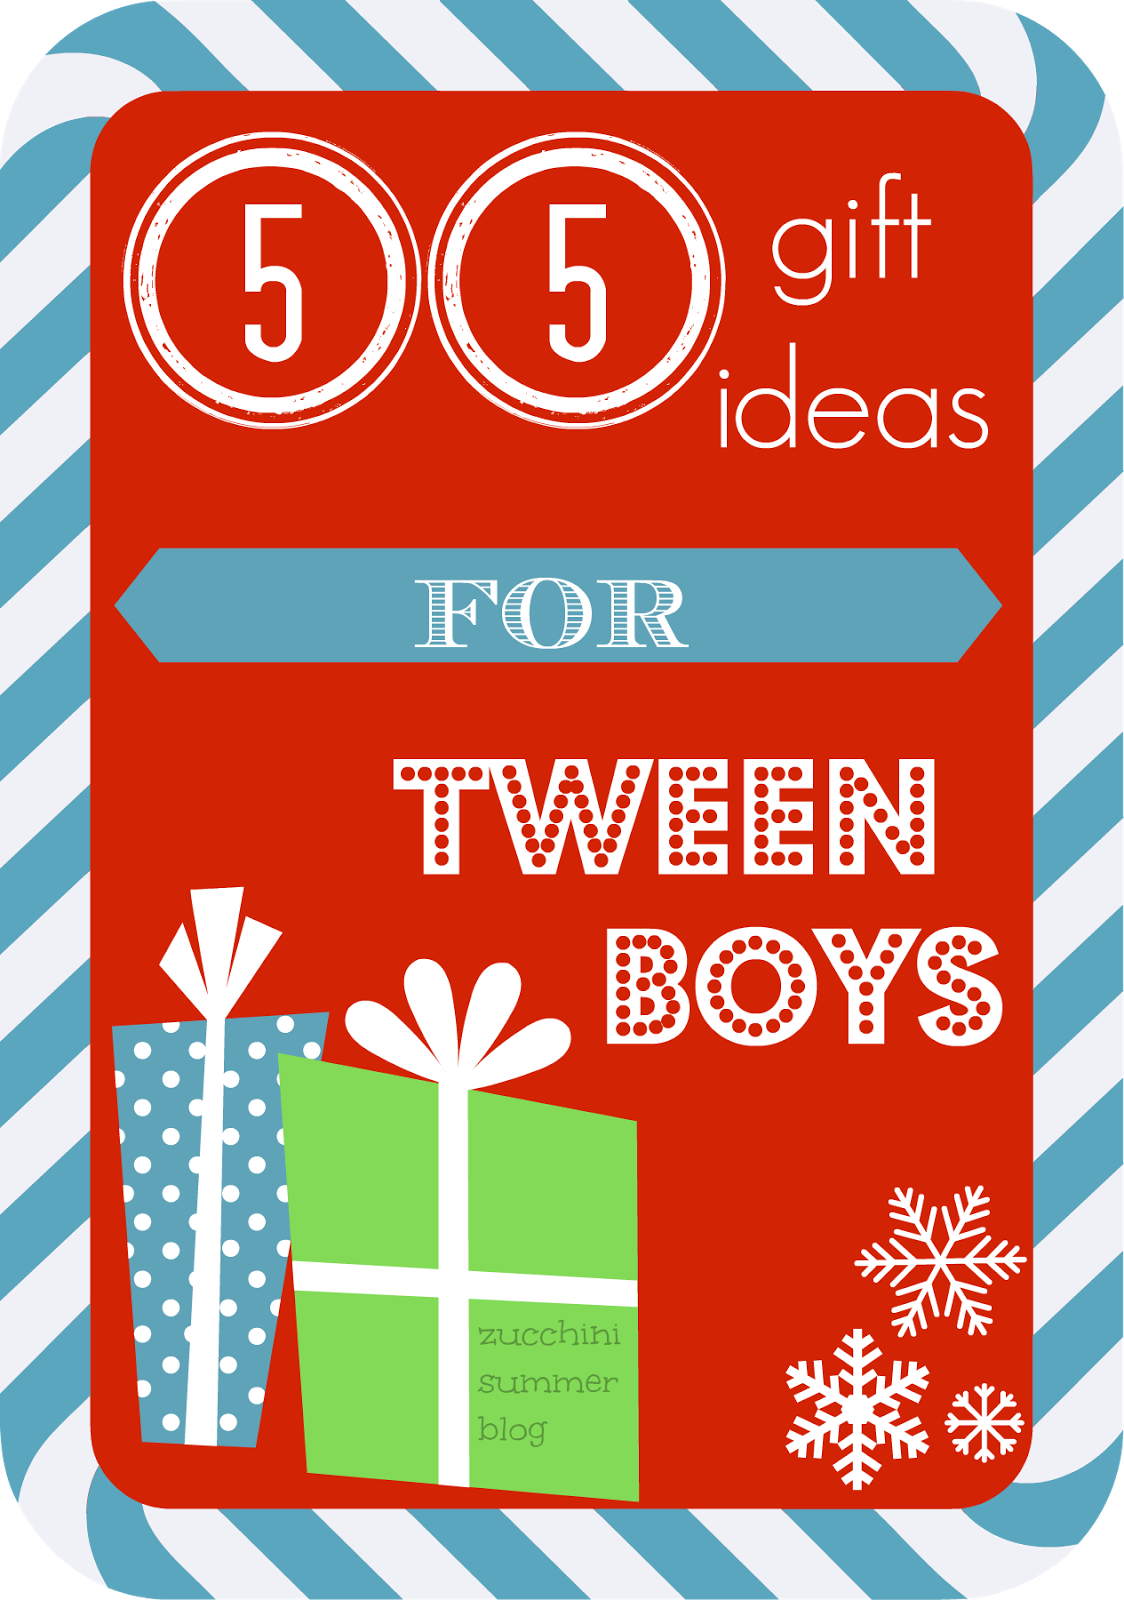 tween boy, preteen boy, preteen gift ideas, preteen christmas gift, tween boy Christmas gift ideas, tween boy gift ideas, tween boy birthday gifts, tween boy gift, preteen gift, tweener birthday gift, tweener christmas gift, teen holiday gift, teen boy gifts, teen boy holiday gift